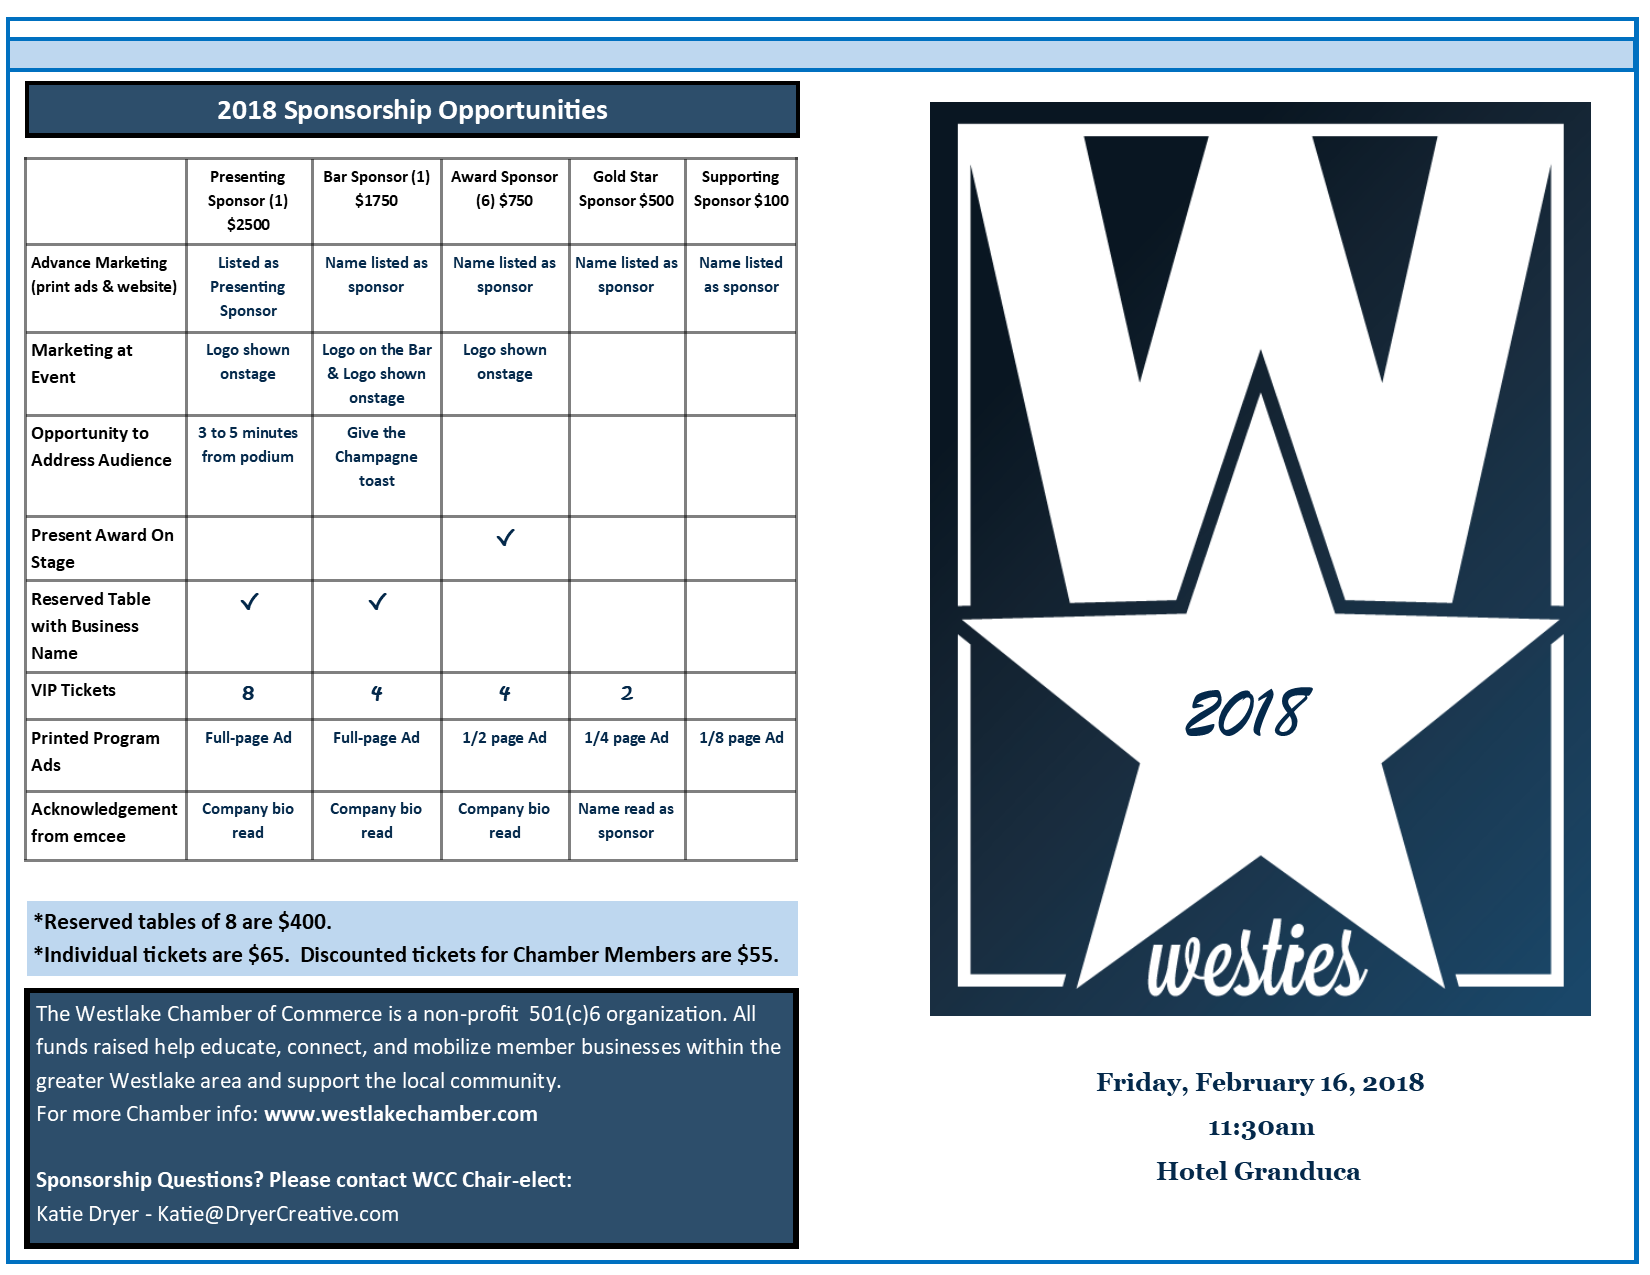 Sponsorship-Menu-for-Westies-2018-p2.png